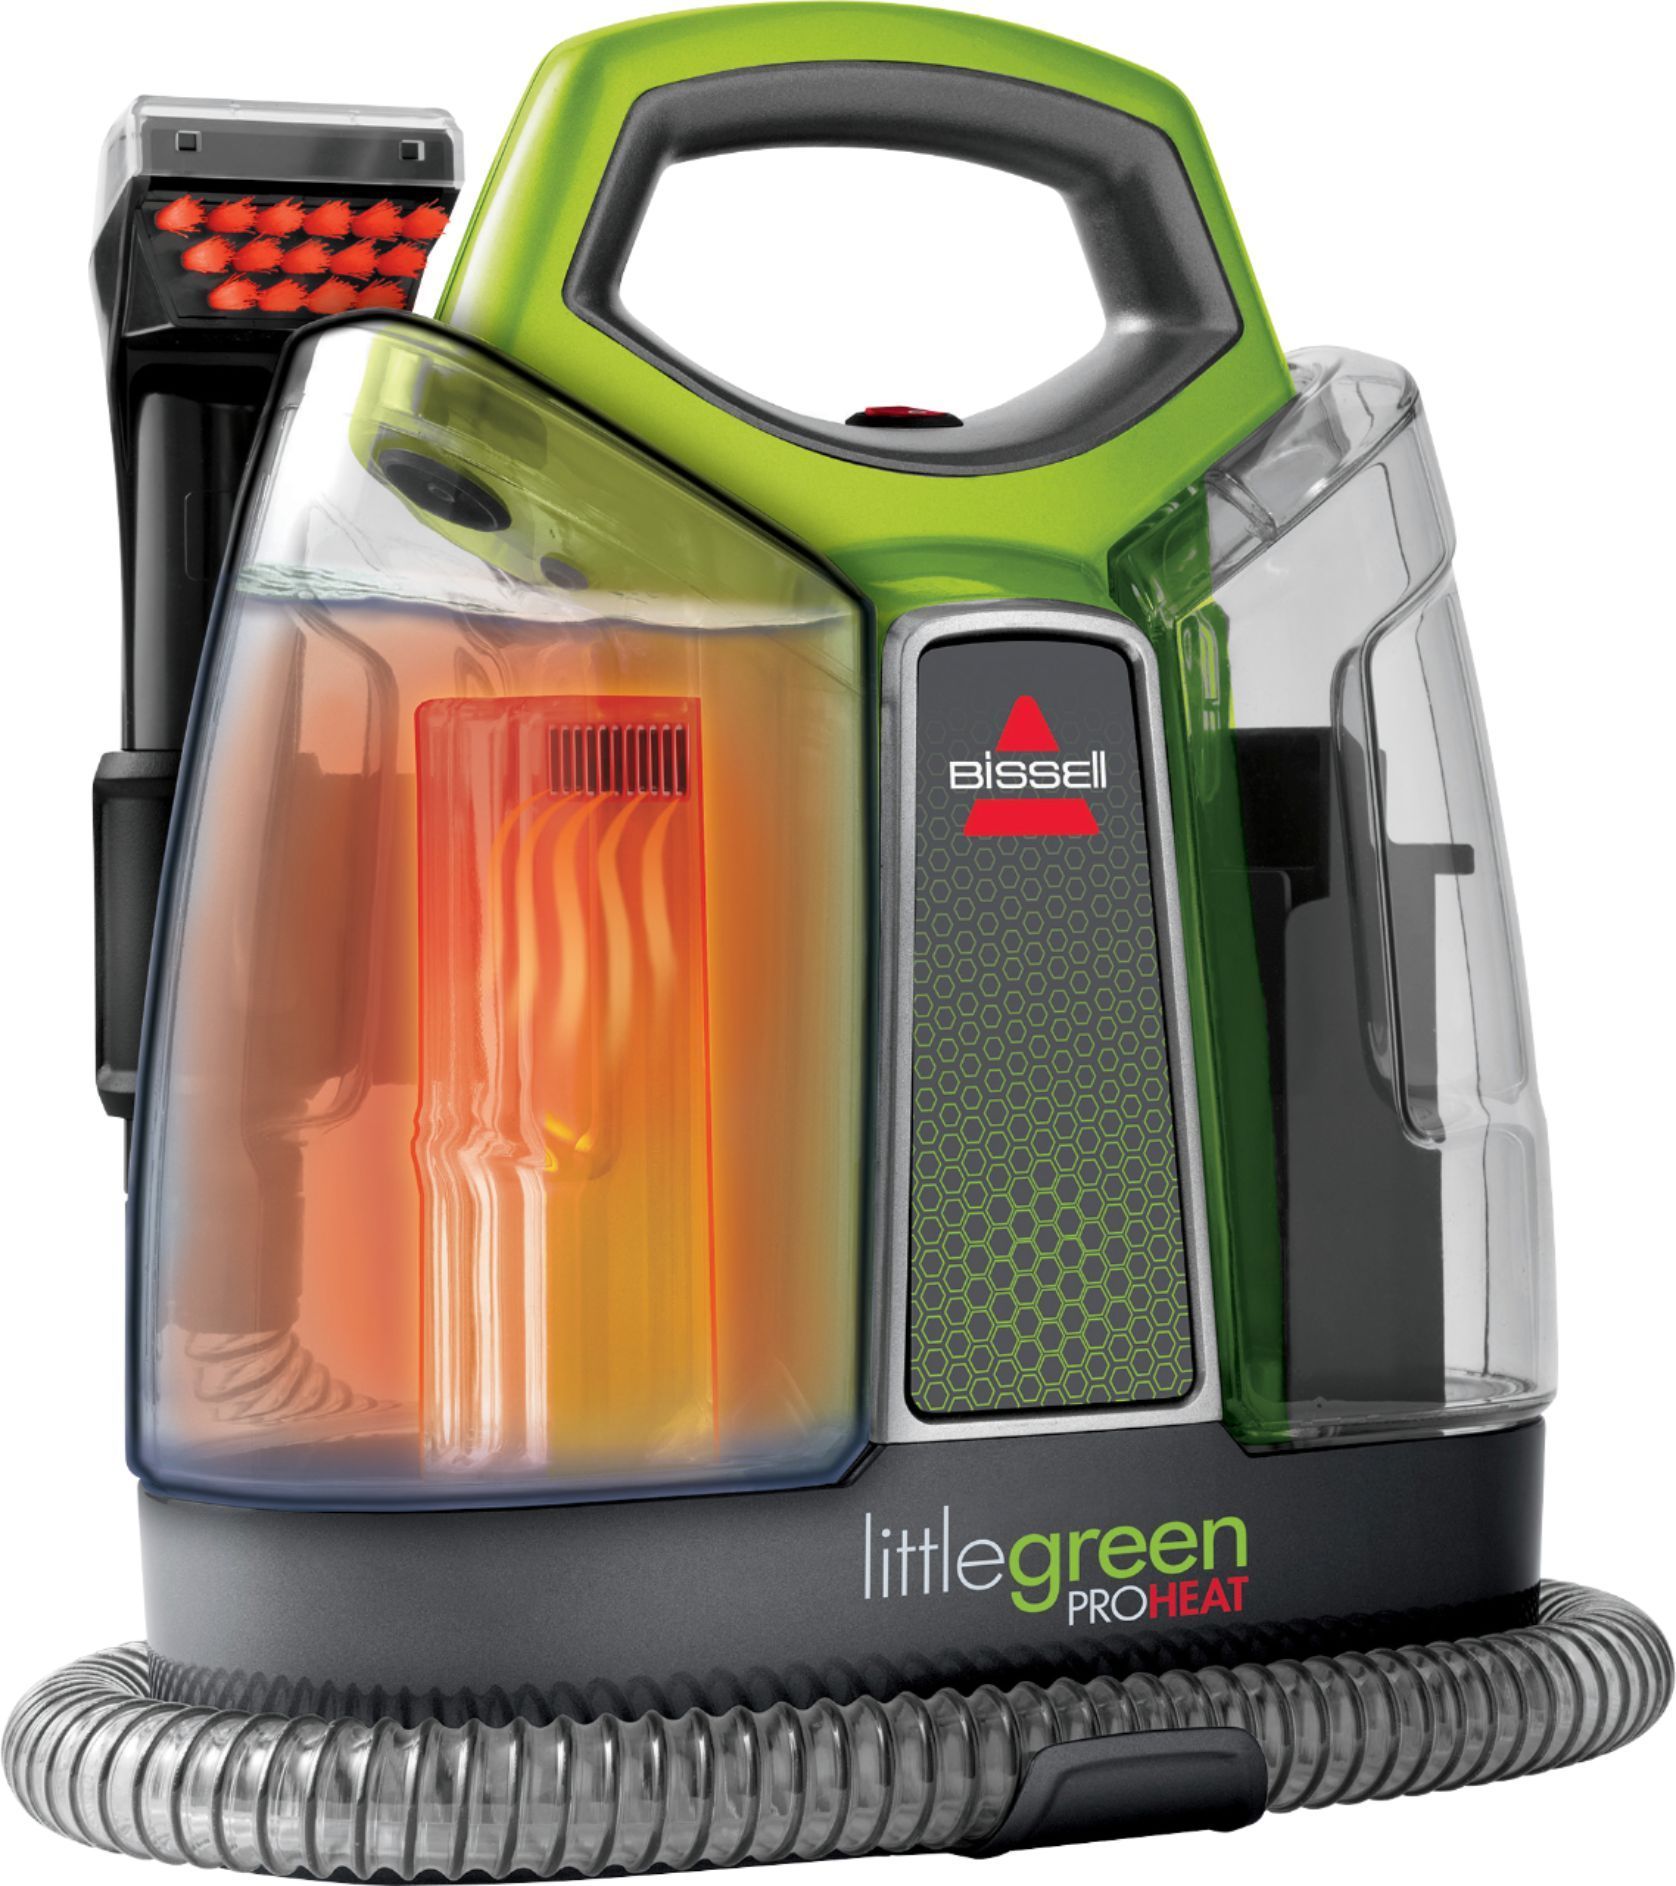 Bissell little green proheat corded handheld deep cleaner